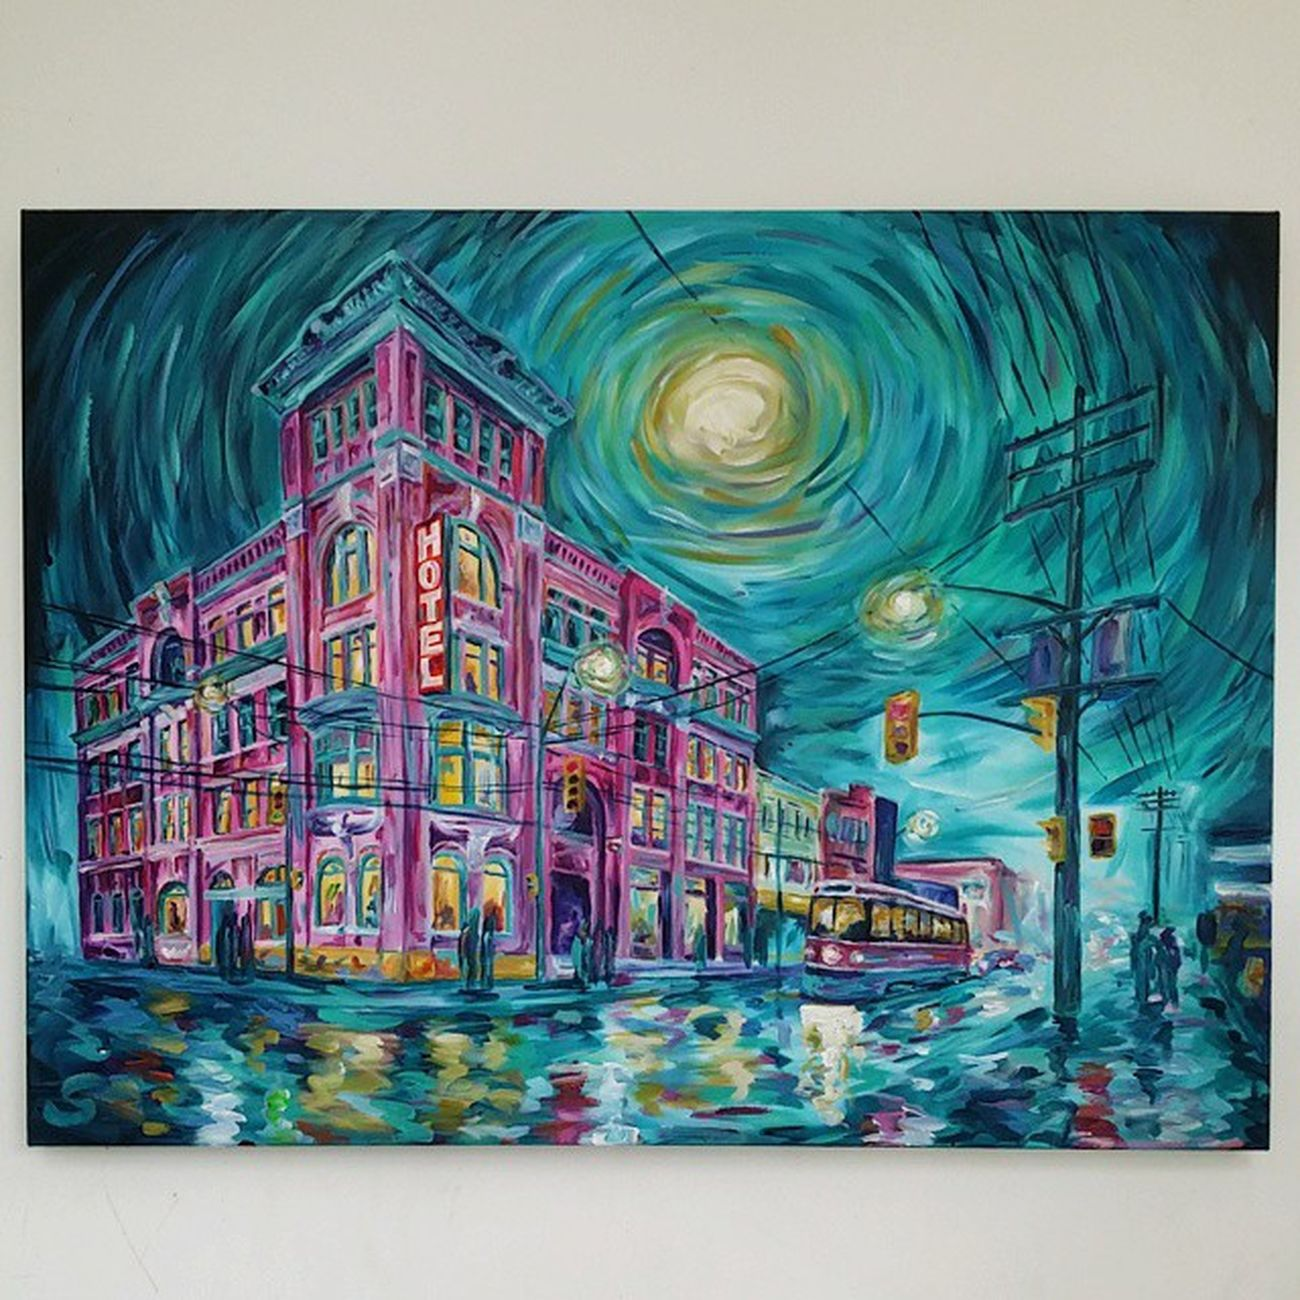 "Newest piece. Gladstone - 30""x40"" acrylic on stretched canvas. Caseyoneillart Gladstone Toronto"